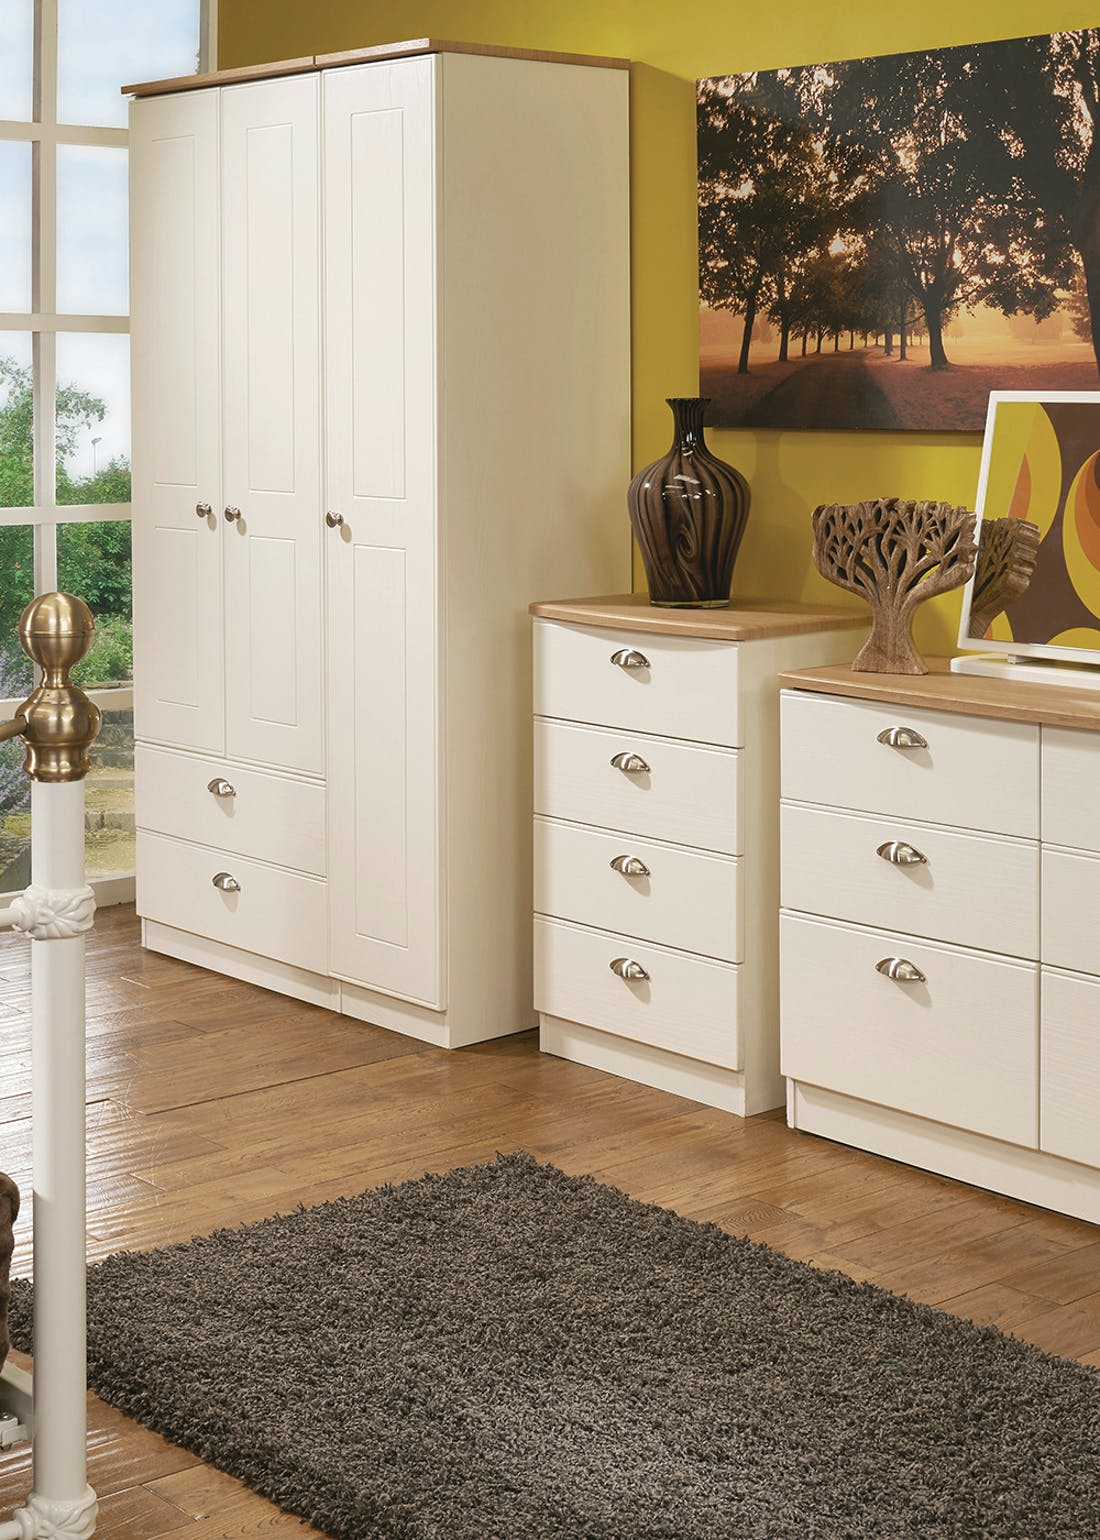 Swift Stamford 3 Drawer Bedside Table (69.5cm x 39.5cm x 41.5cm)